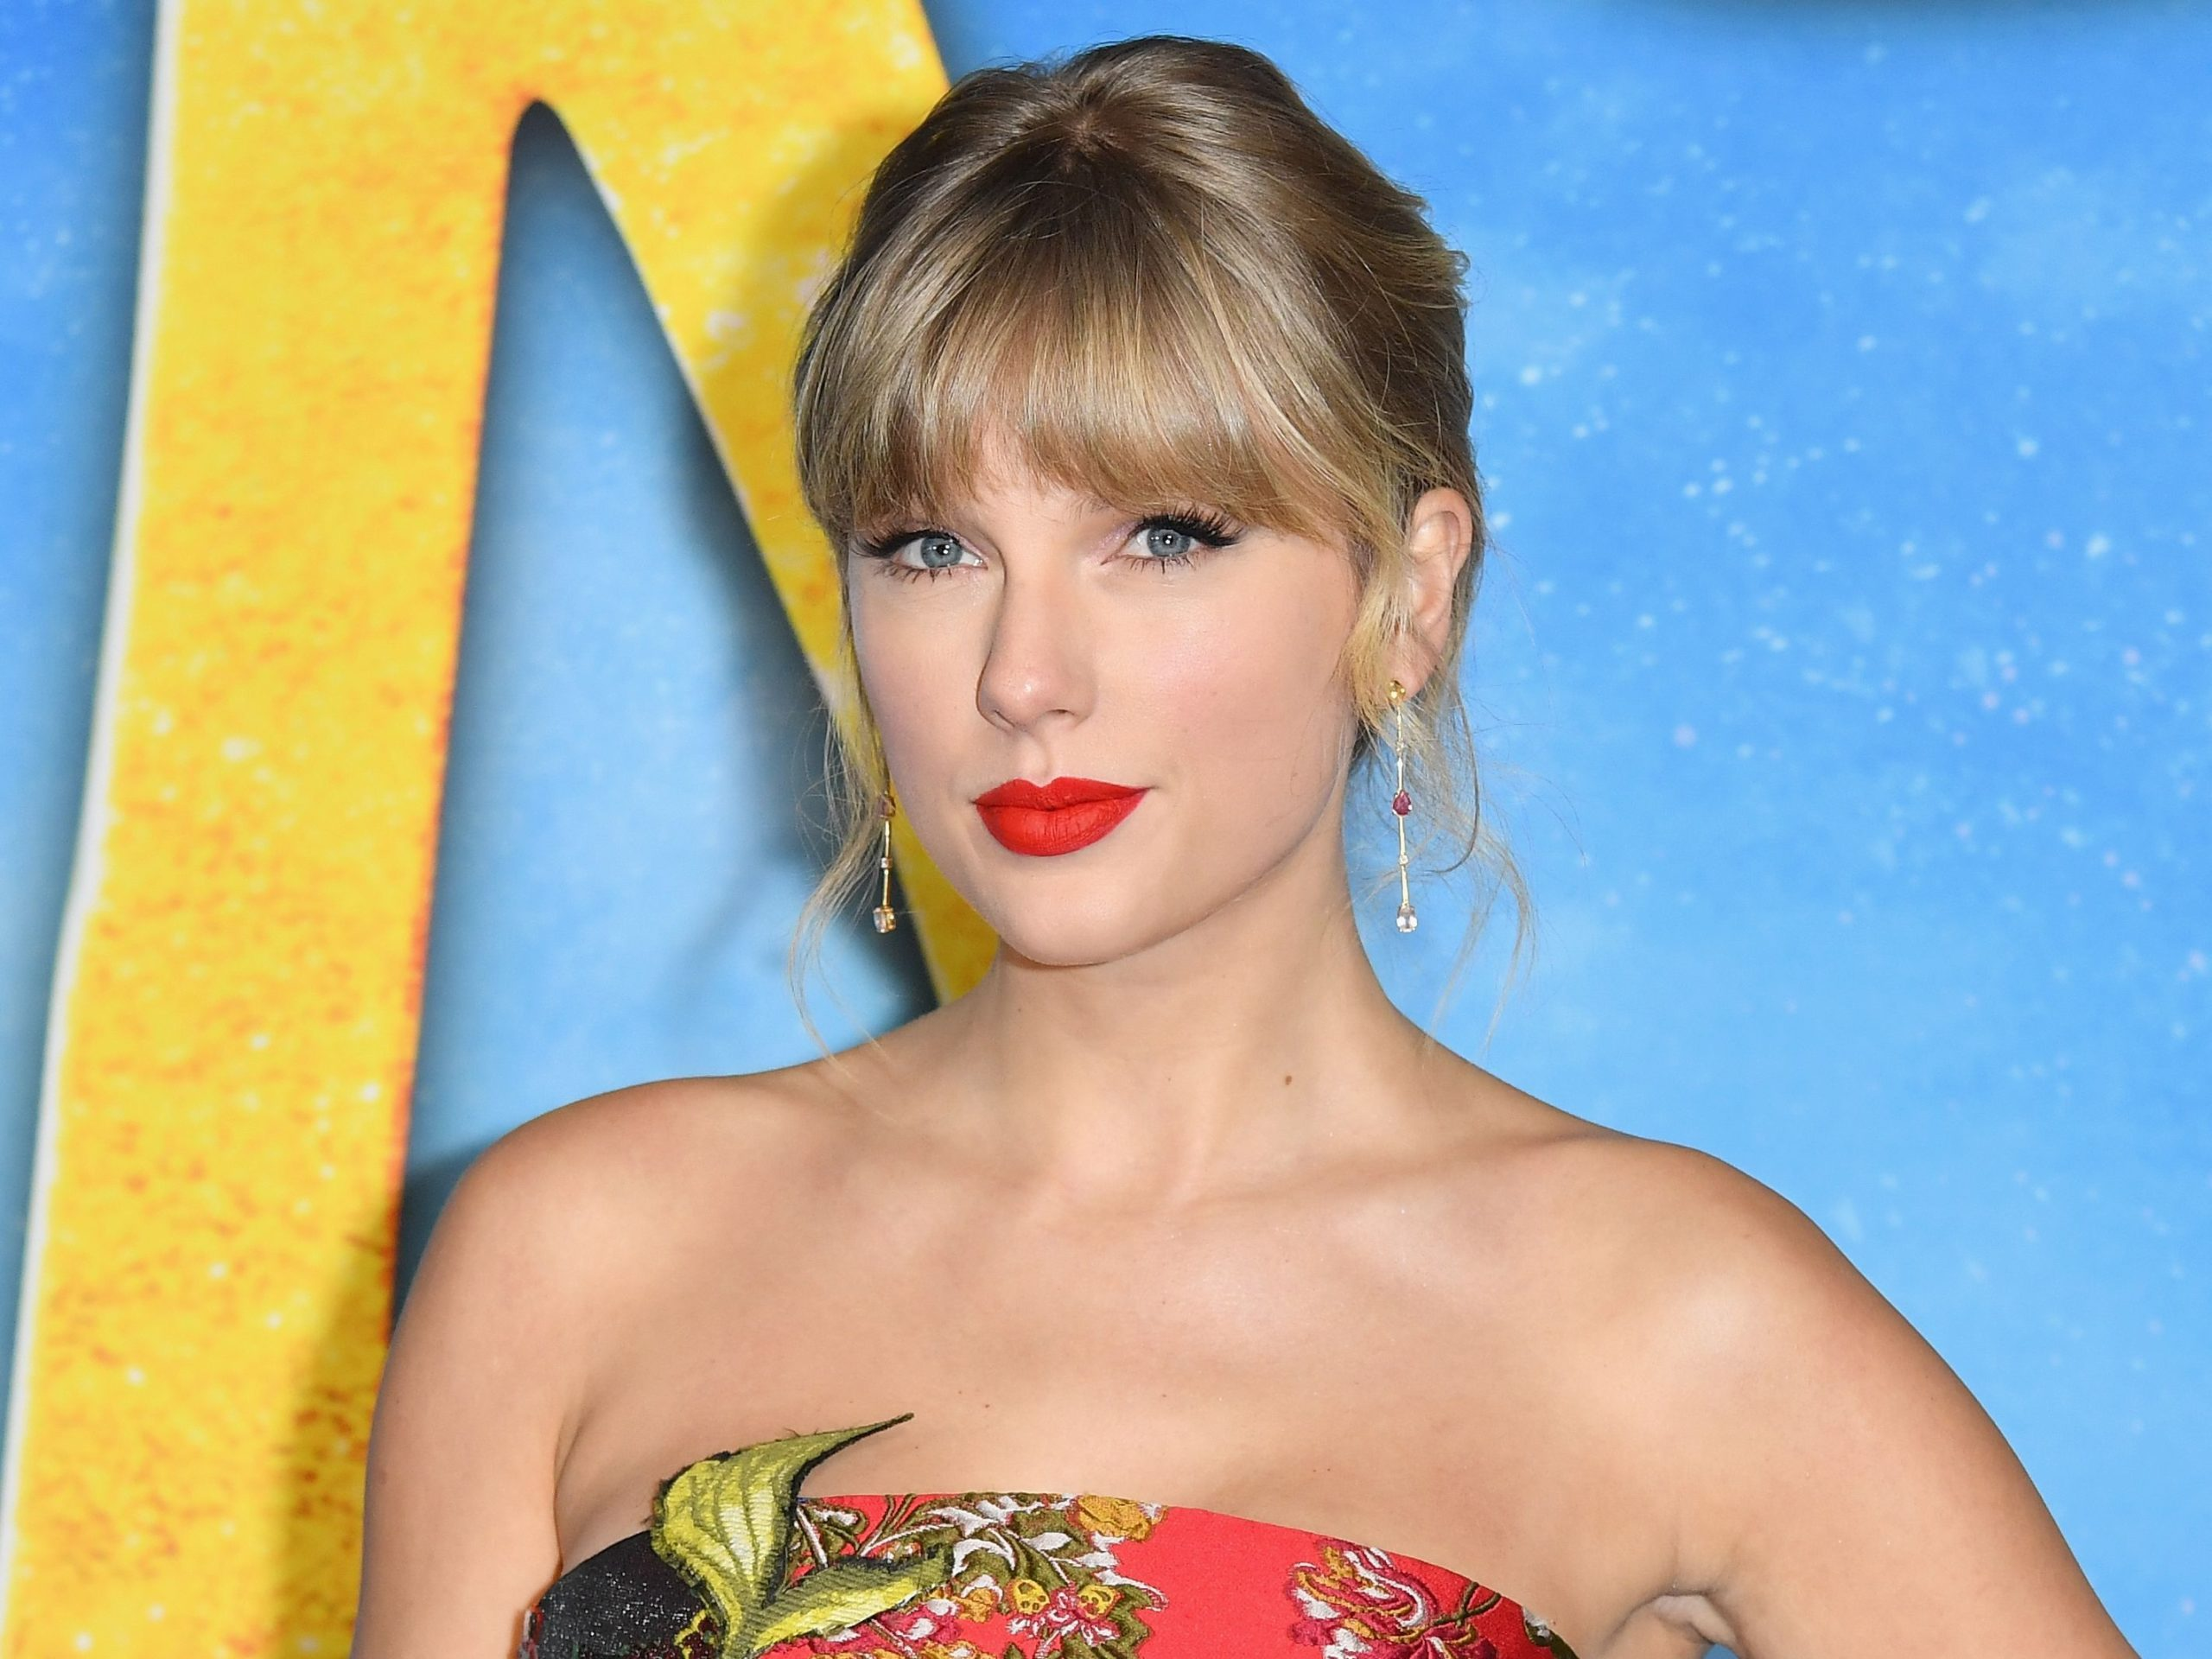 'Metropolis of lover': taylor swift live performance is all of the calm you need amid this pandemic, say followers